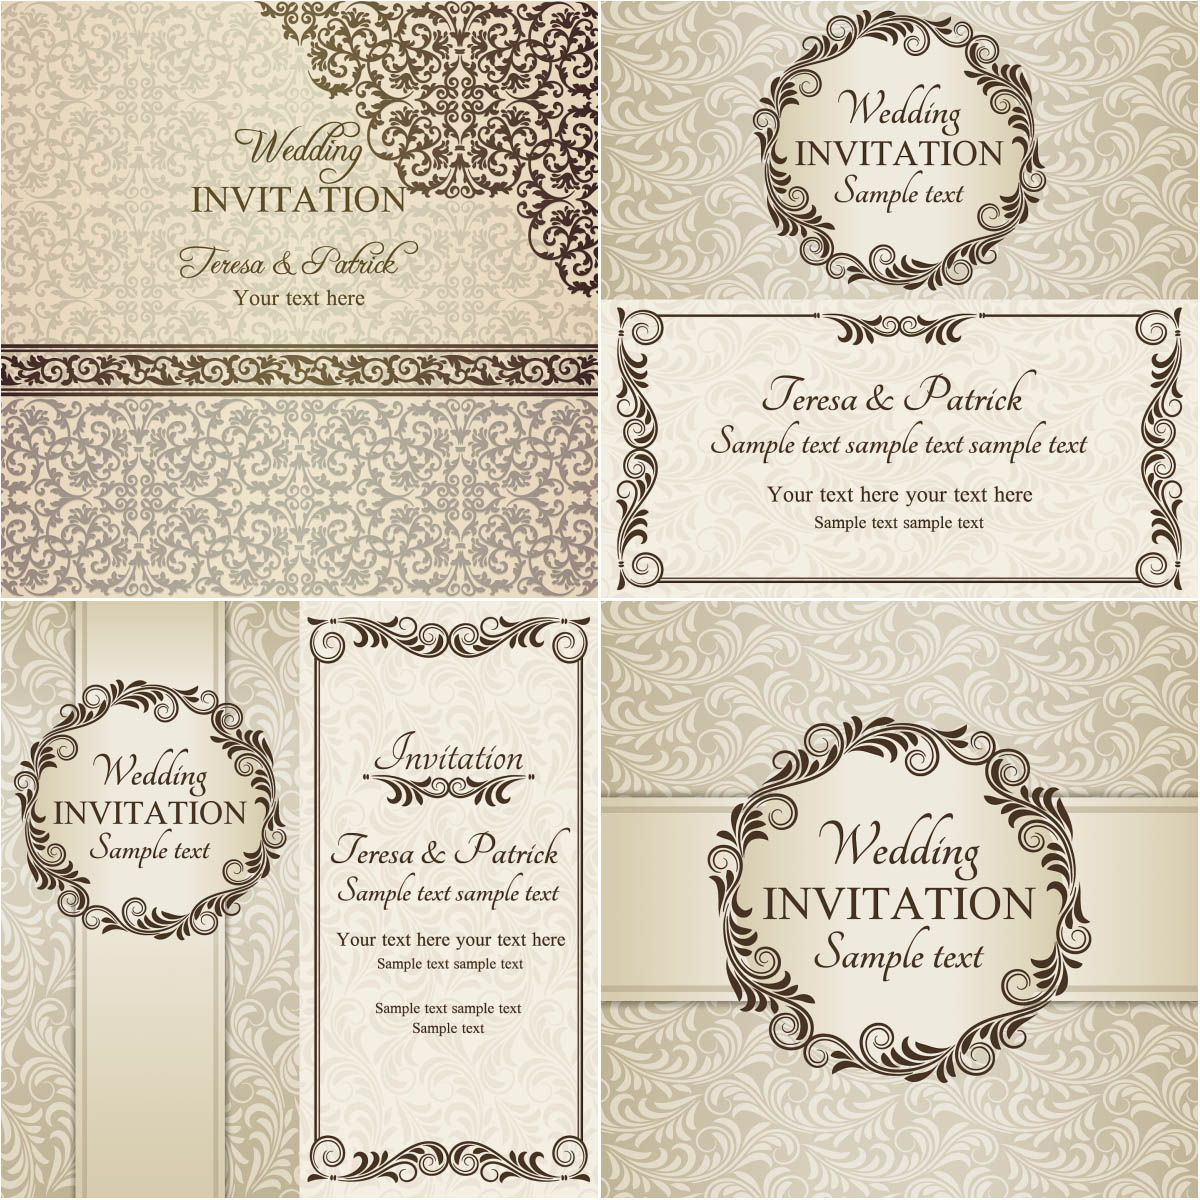 Beige Wedding invitations vector free for download and ready for ...